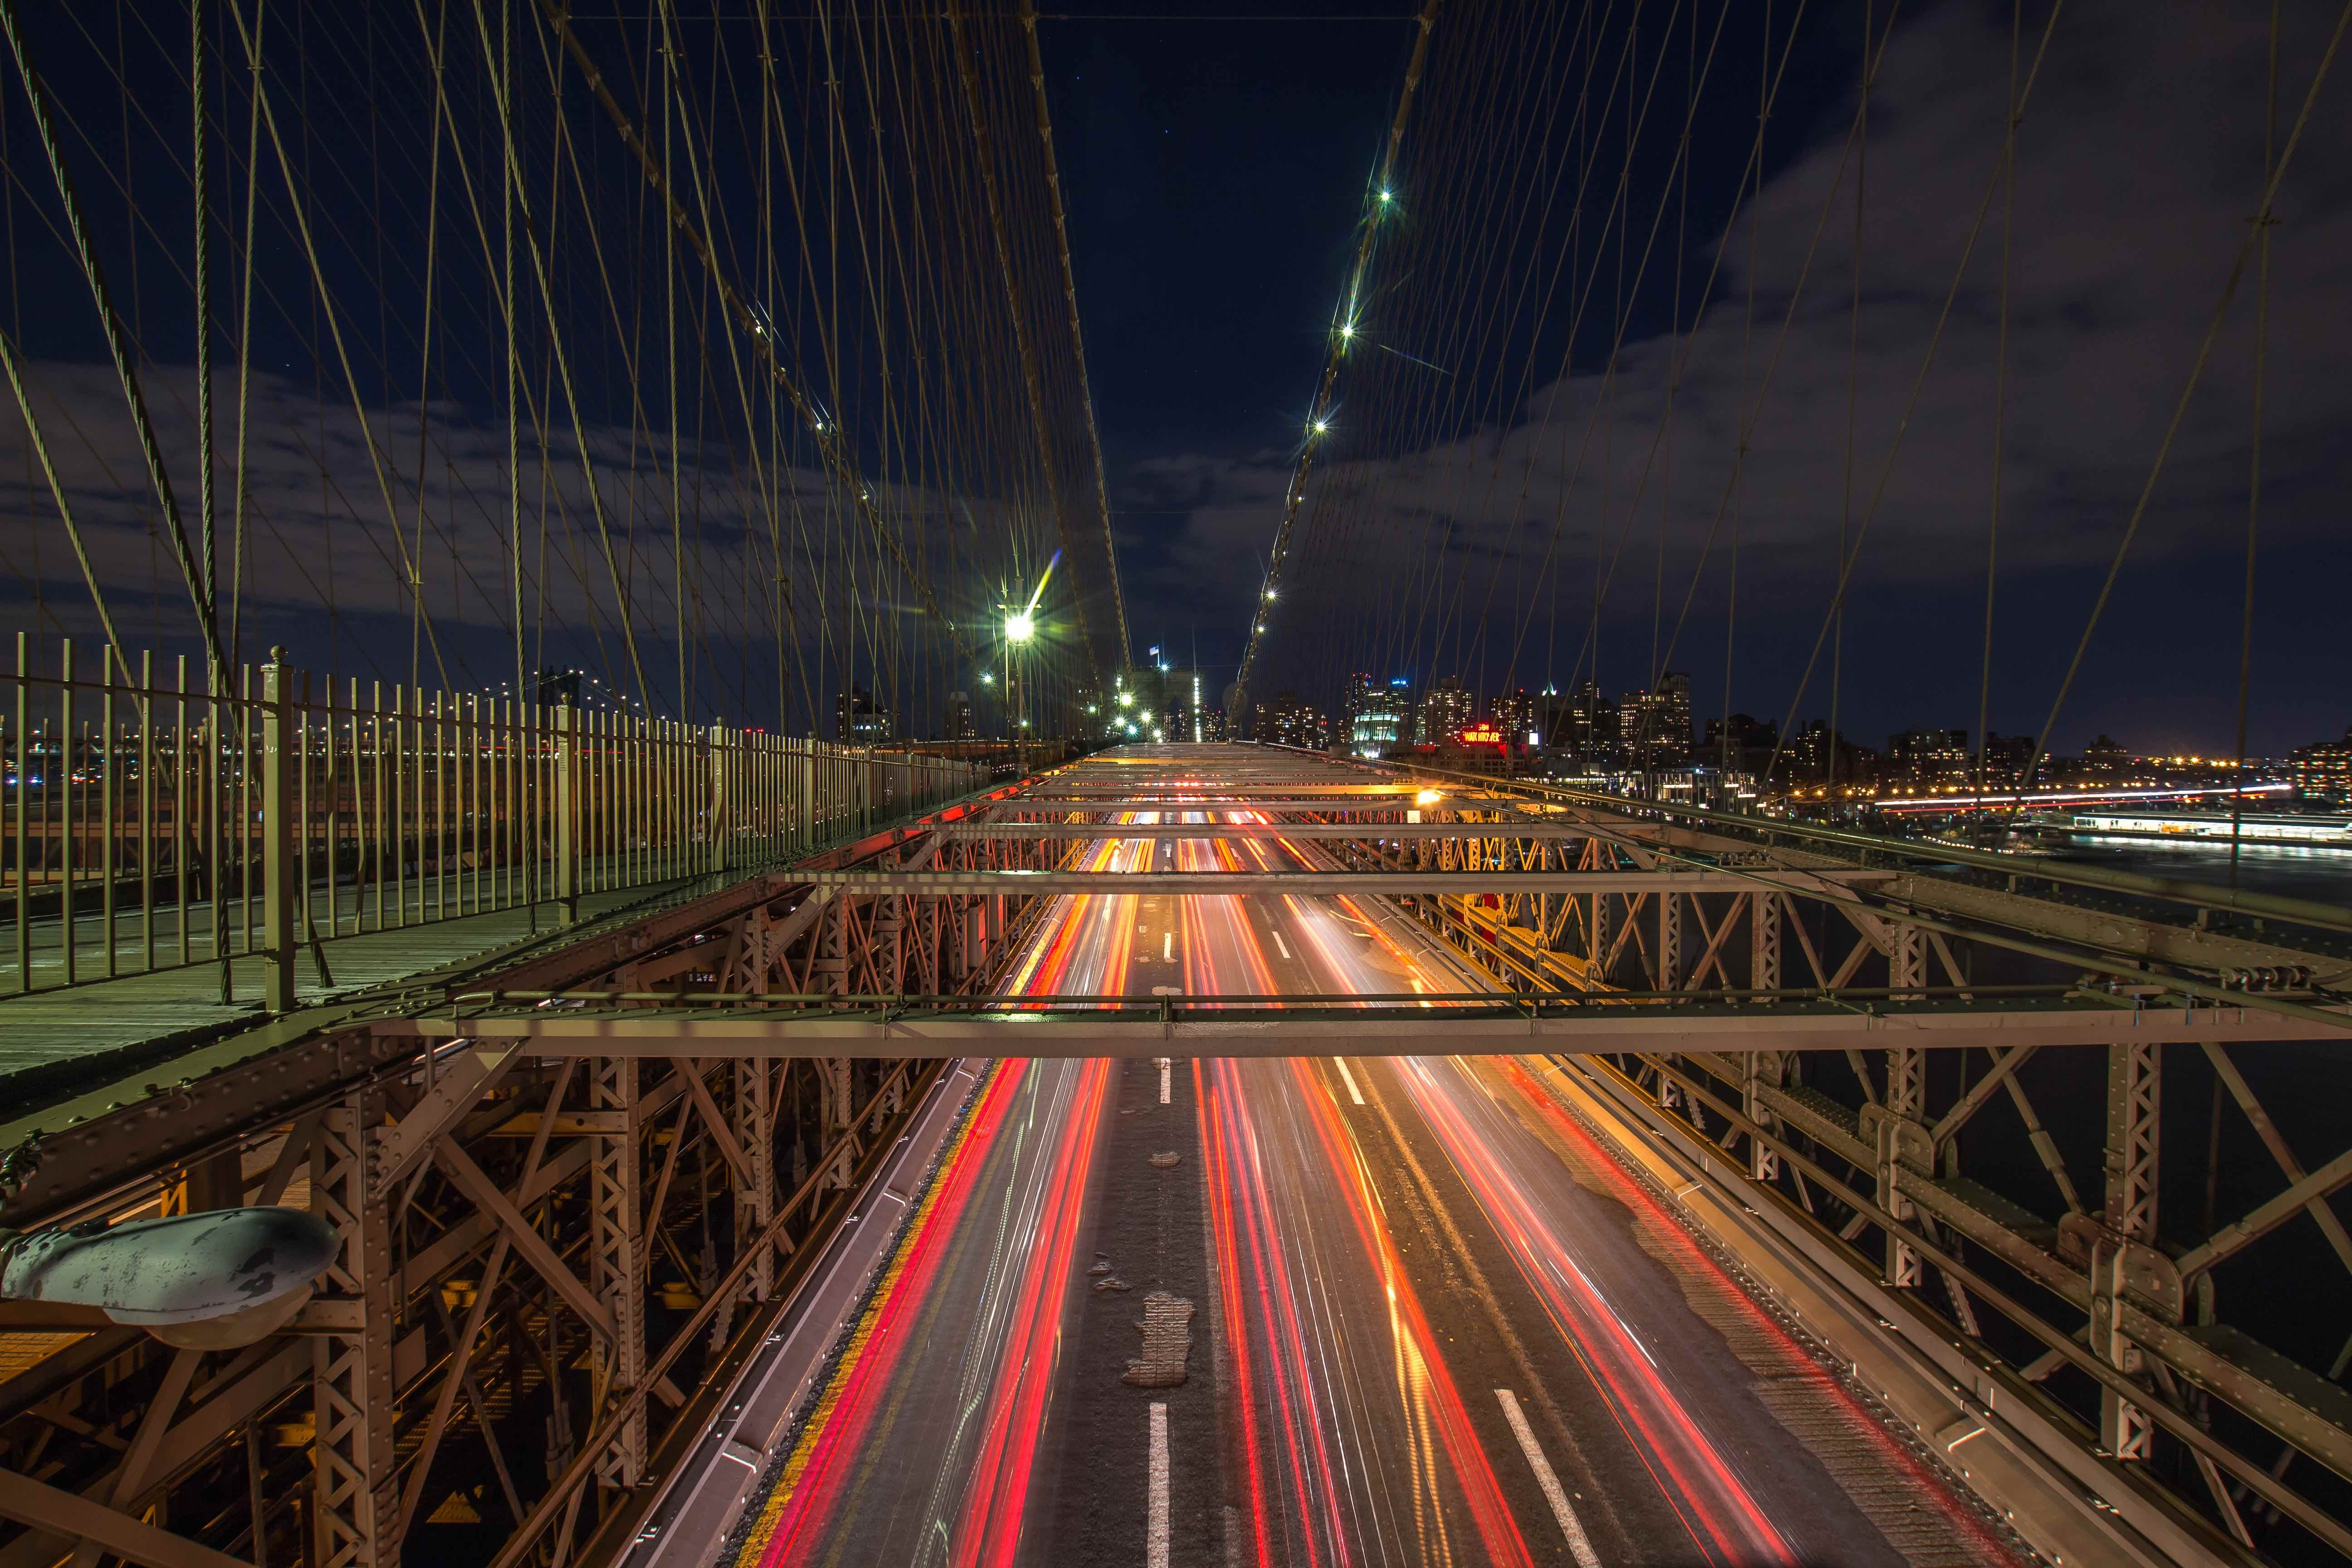 A night-time shot of the Brooklyn Bridge with eccentric traffic light trails